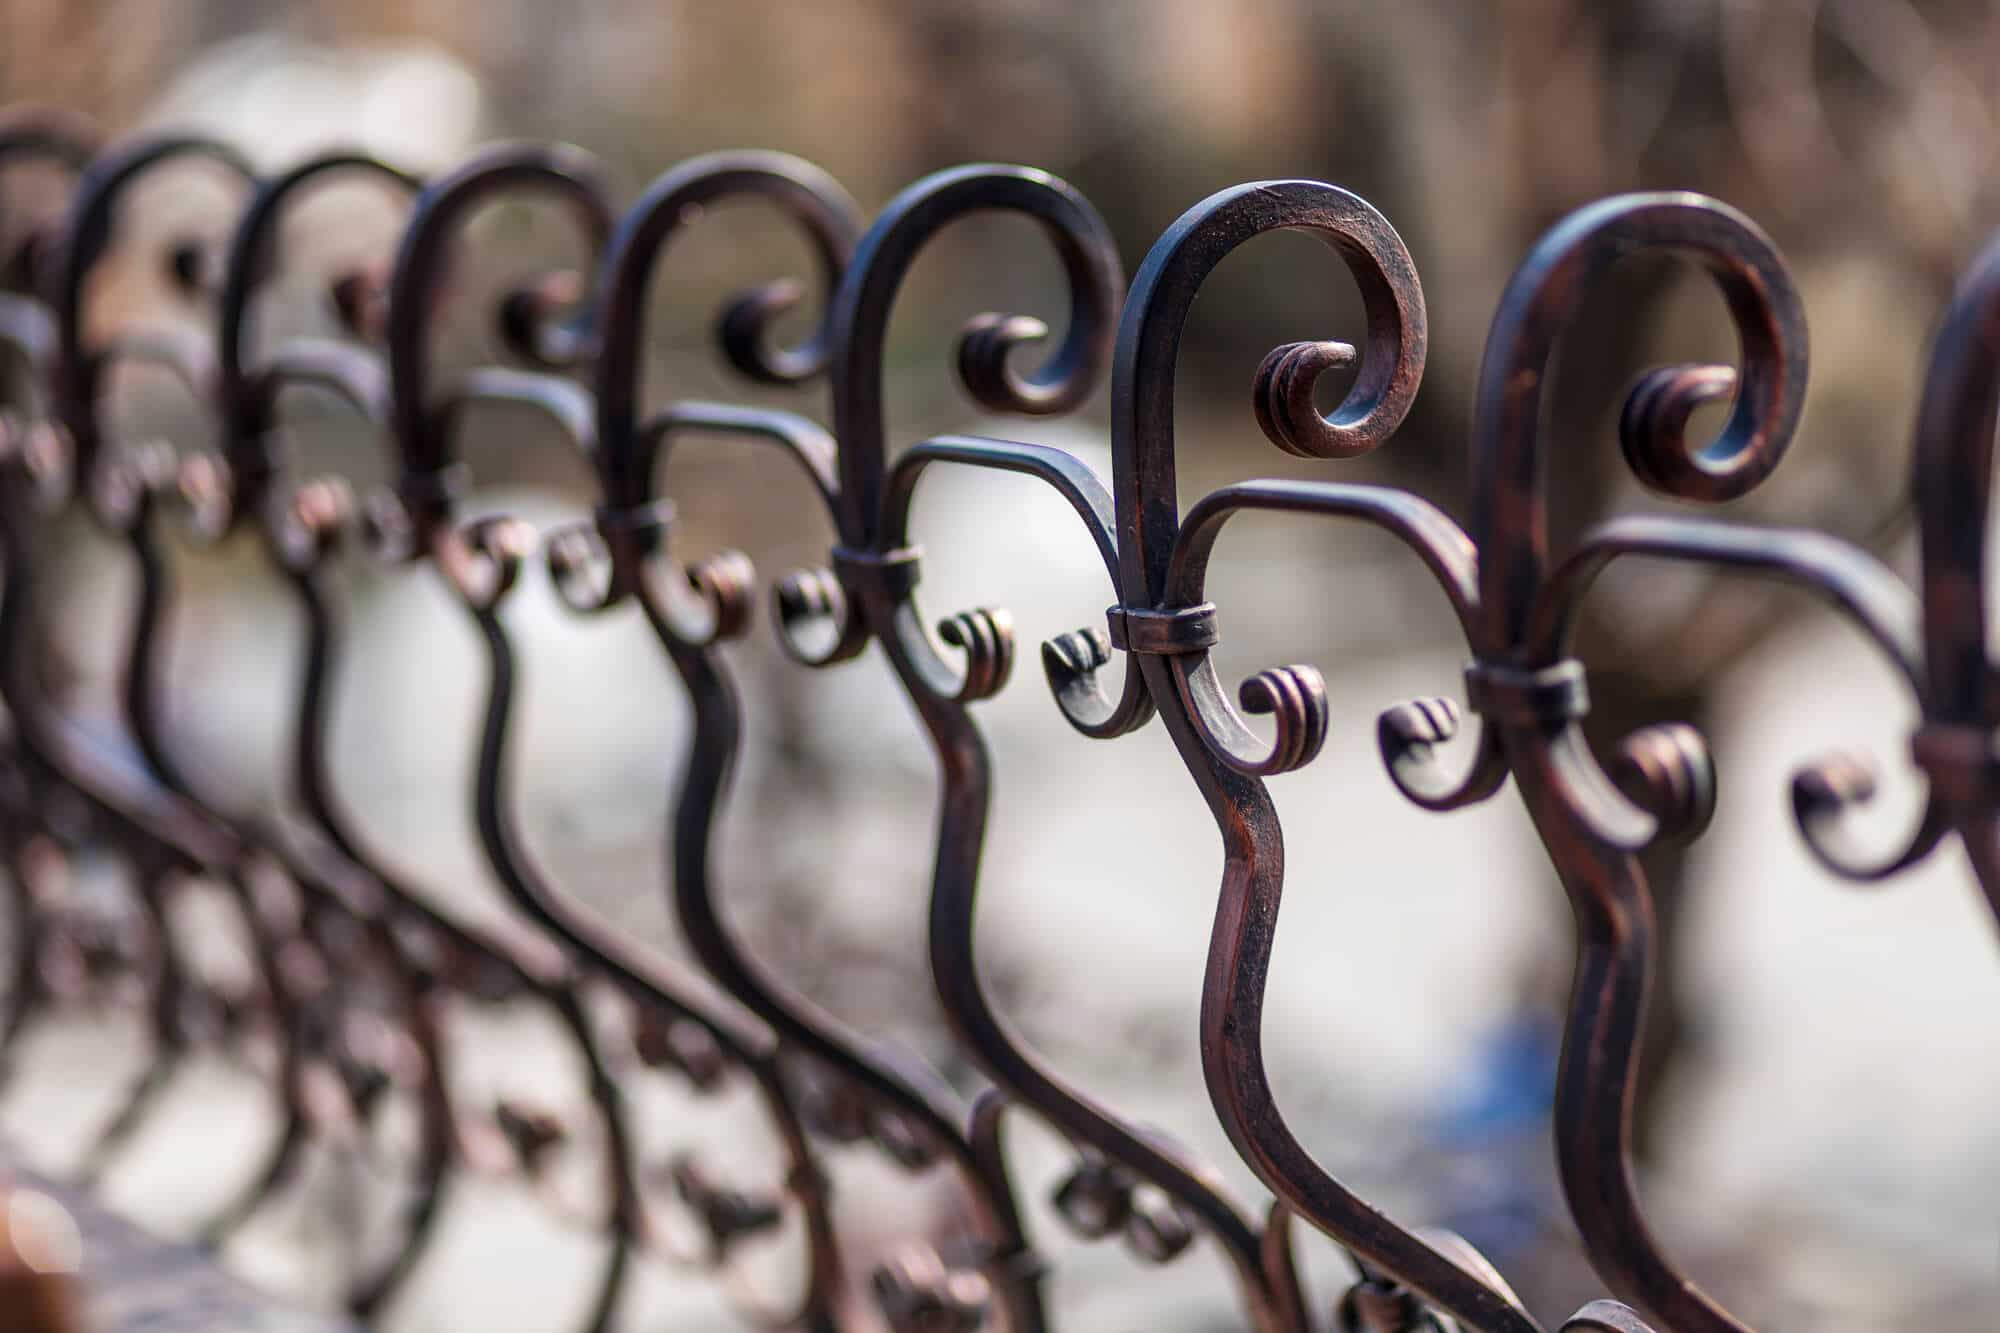 wrought iron garden gate new orleans - Big Easy Fences